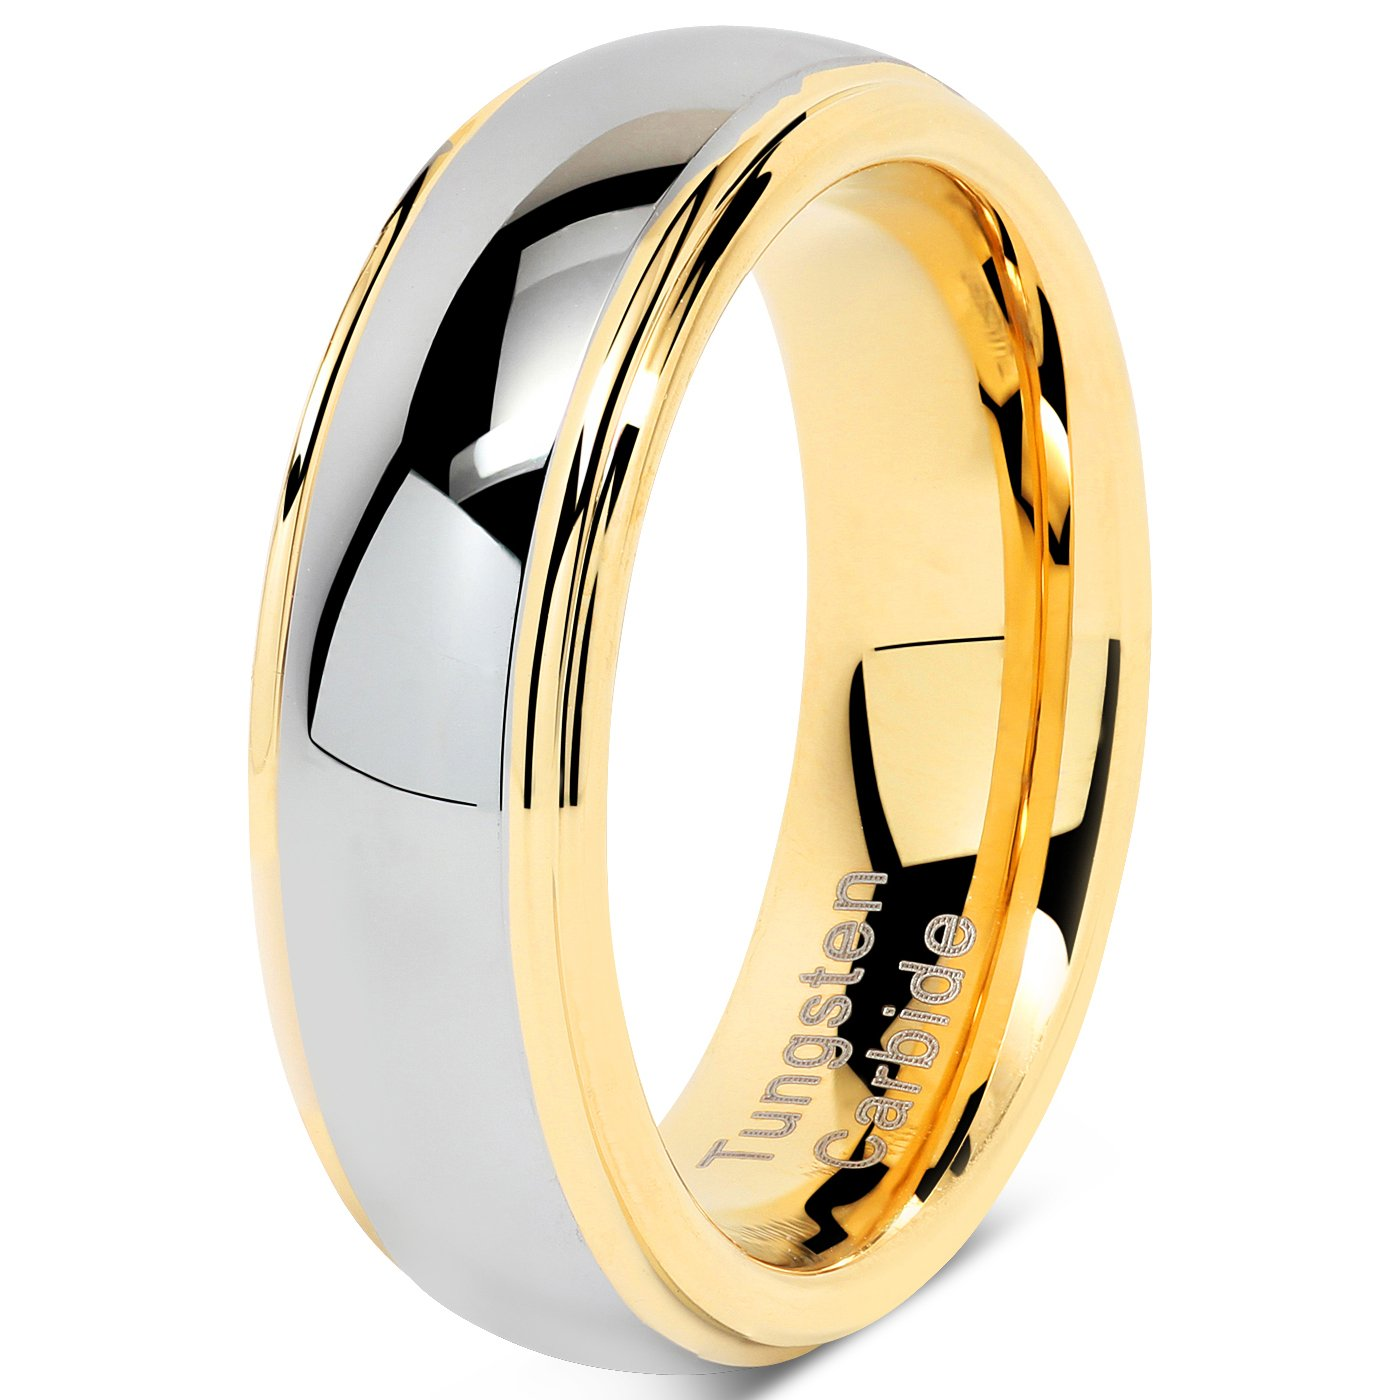 Amazon.com: 100S Jewelry - Anillos de tungsteno de 0.236 in ...